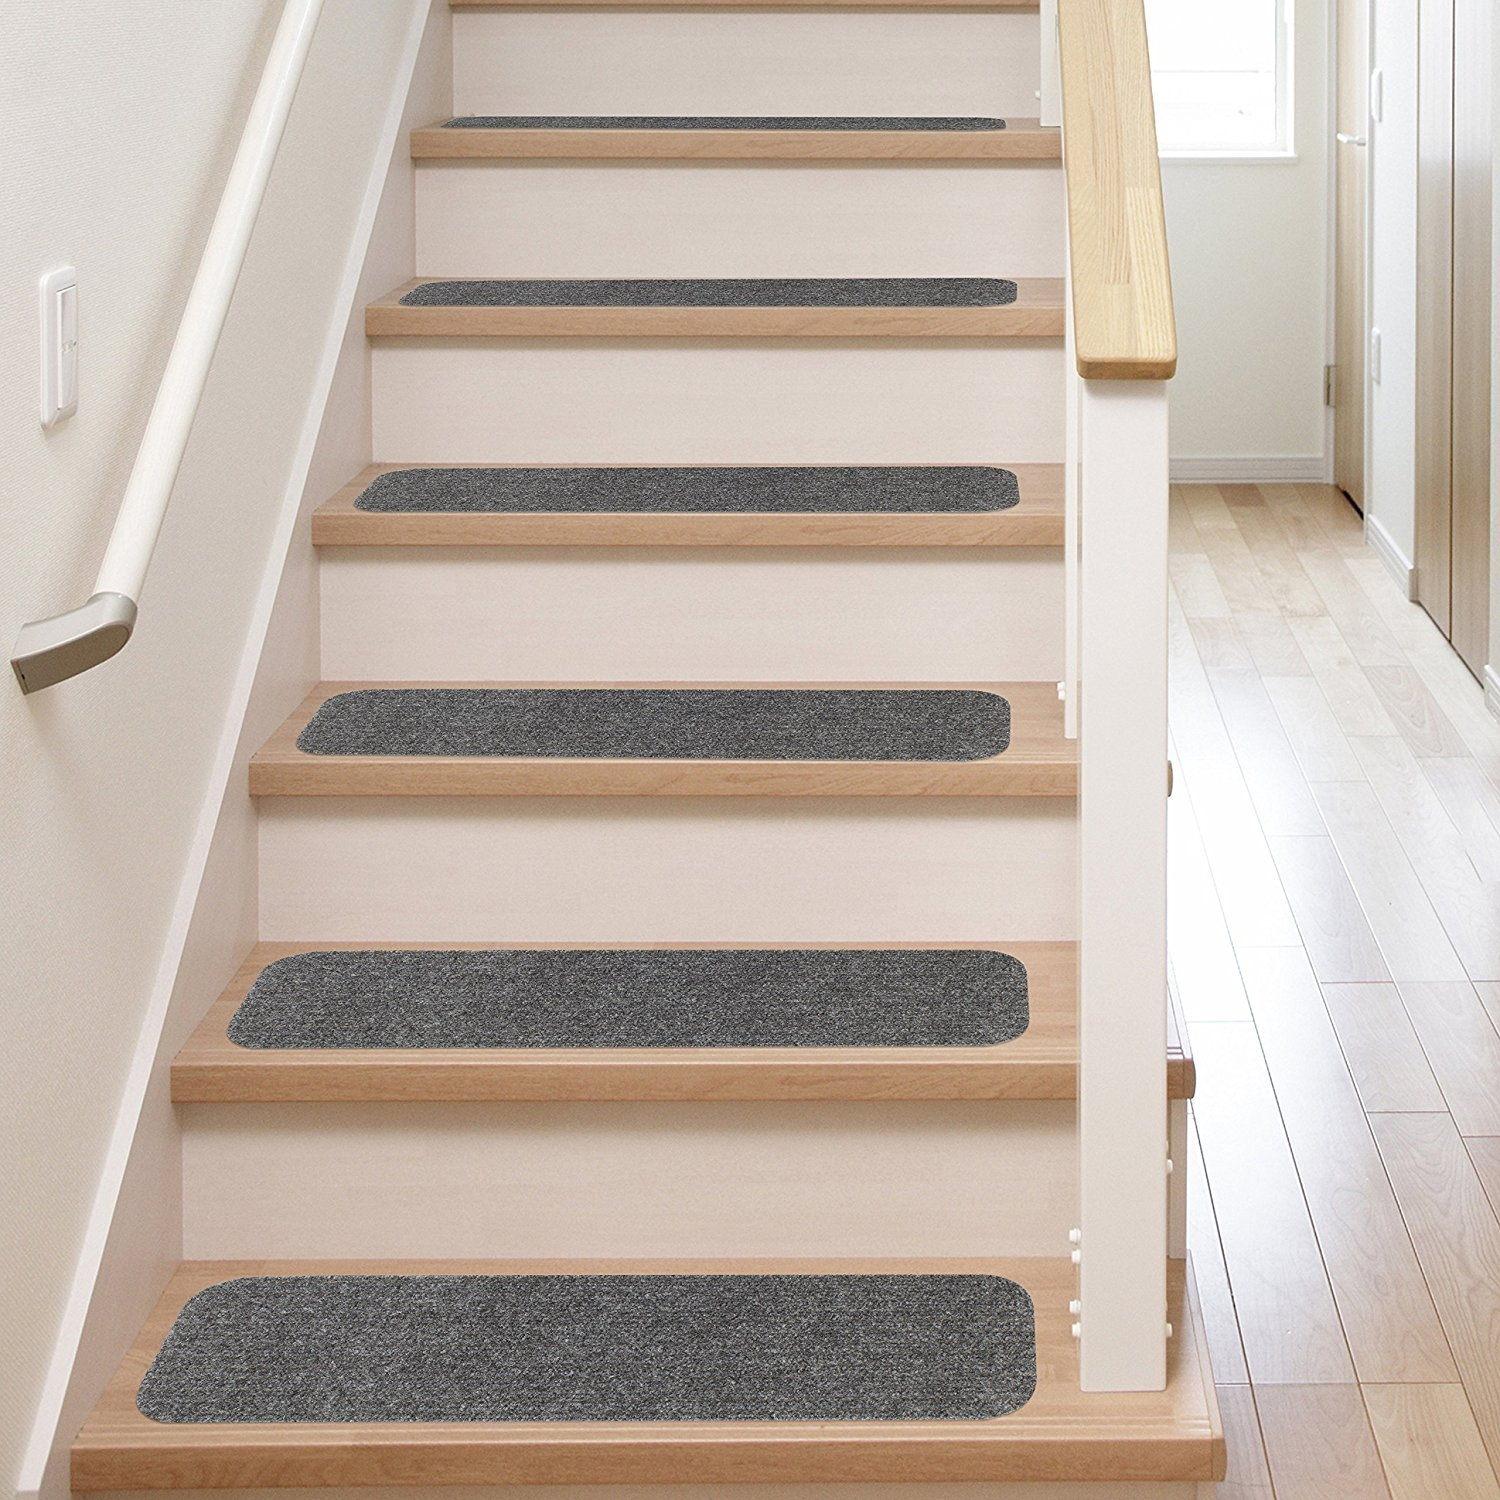 13 Stair Treads Non Slip Carpet Pads Easy Tape Installation Pertaining To  Carpet Protector Mats For